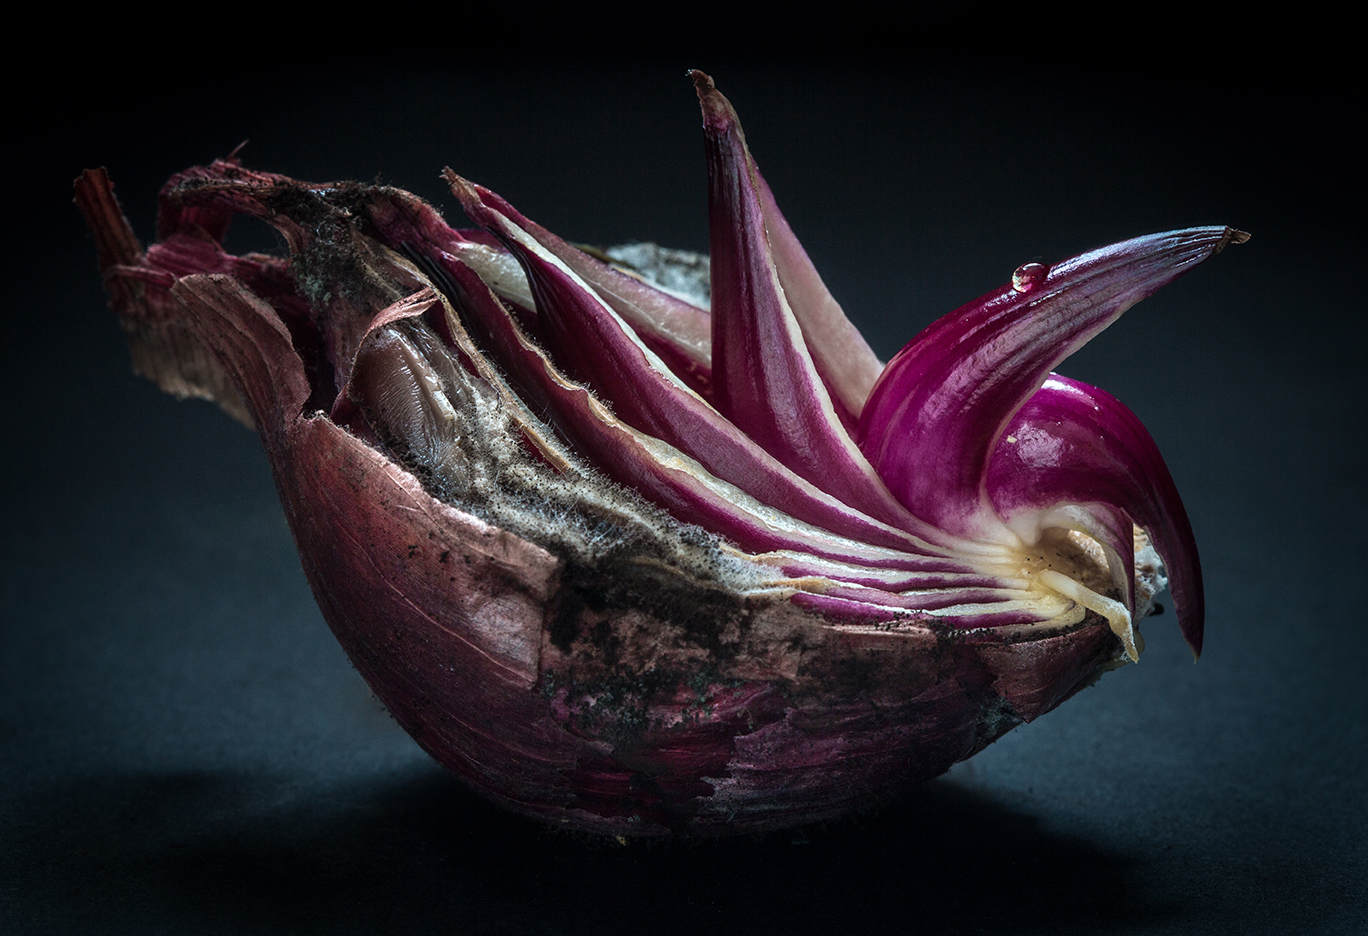 Kim Van Liefferinge   Columbian Exchange Onion  Photography 19 x 13